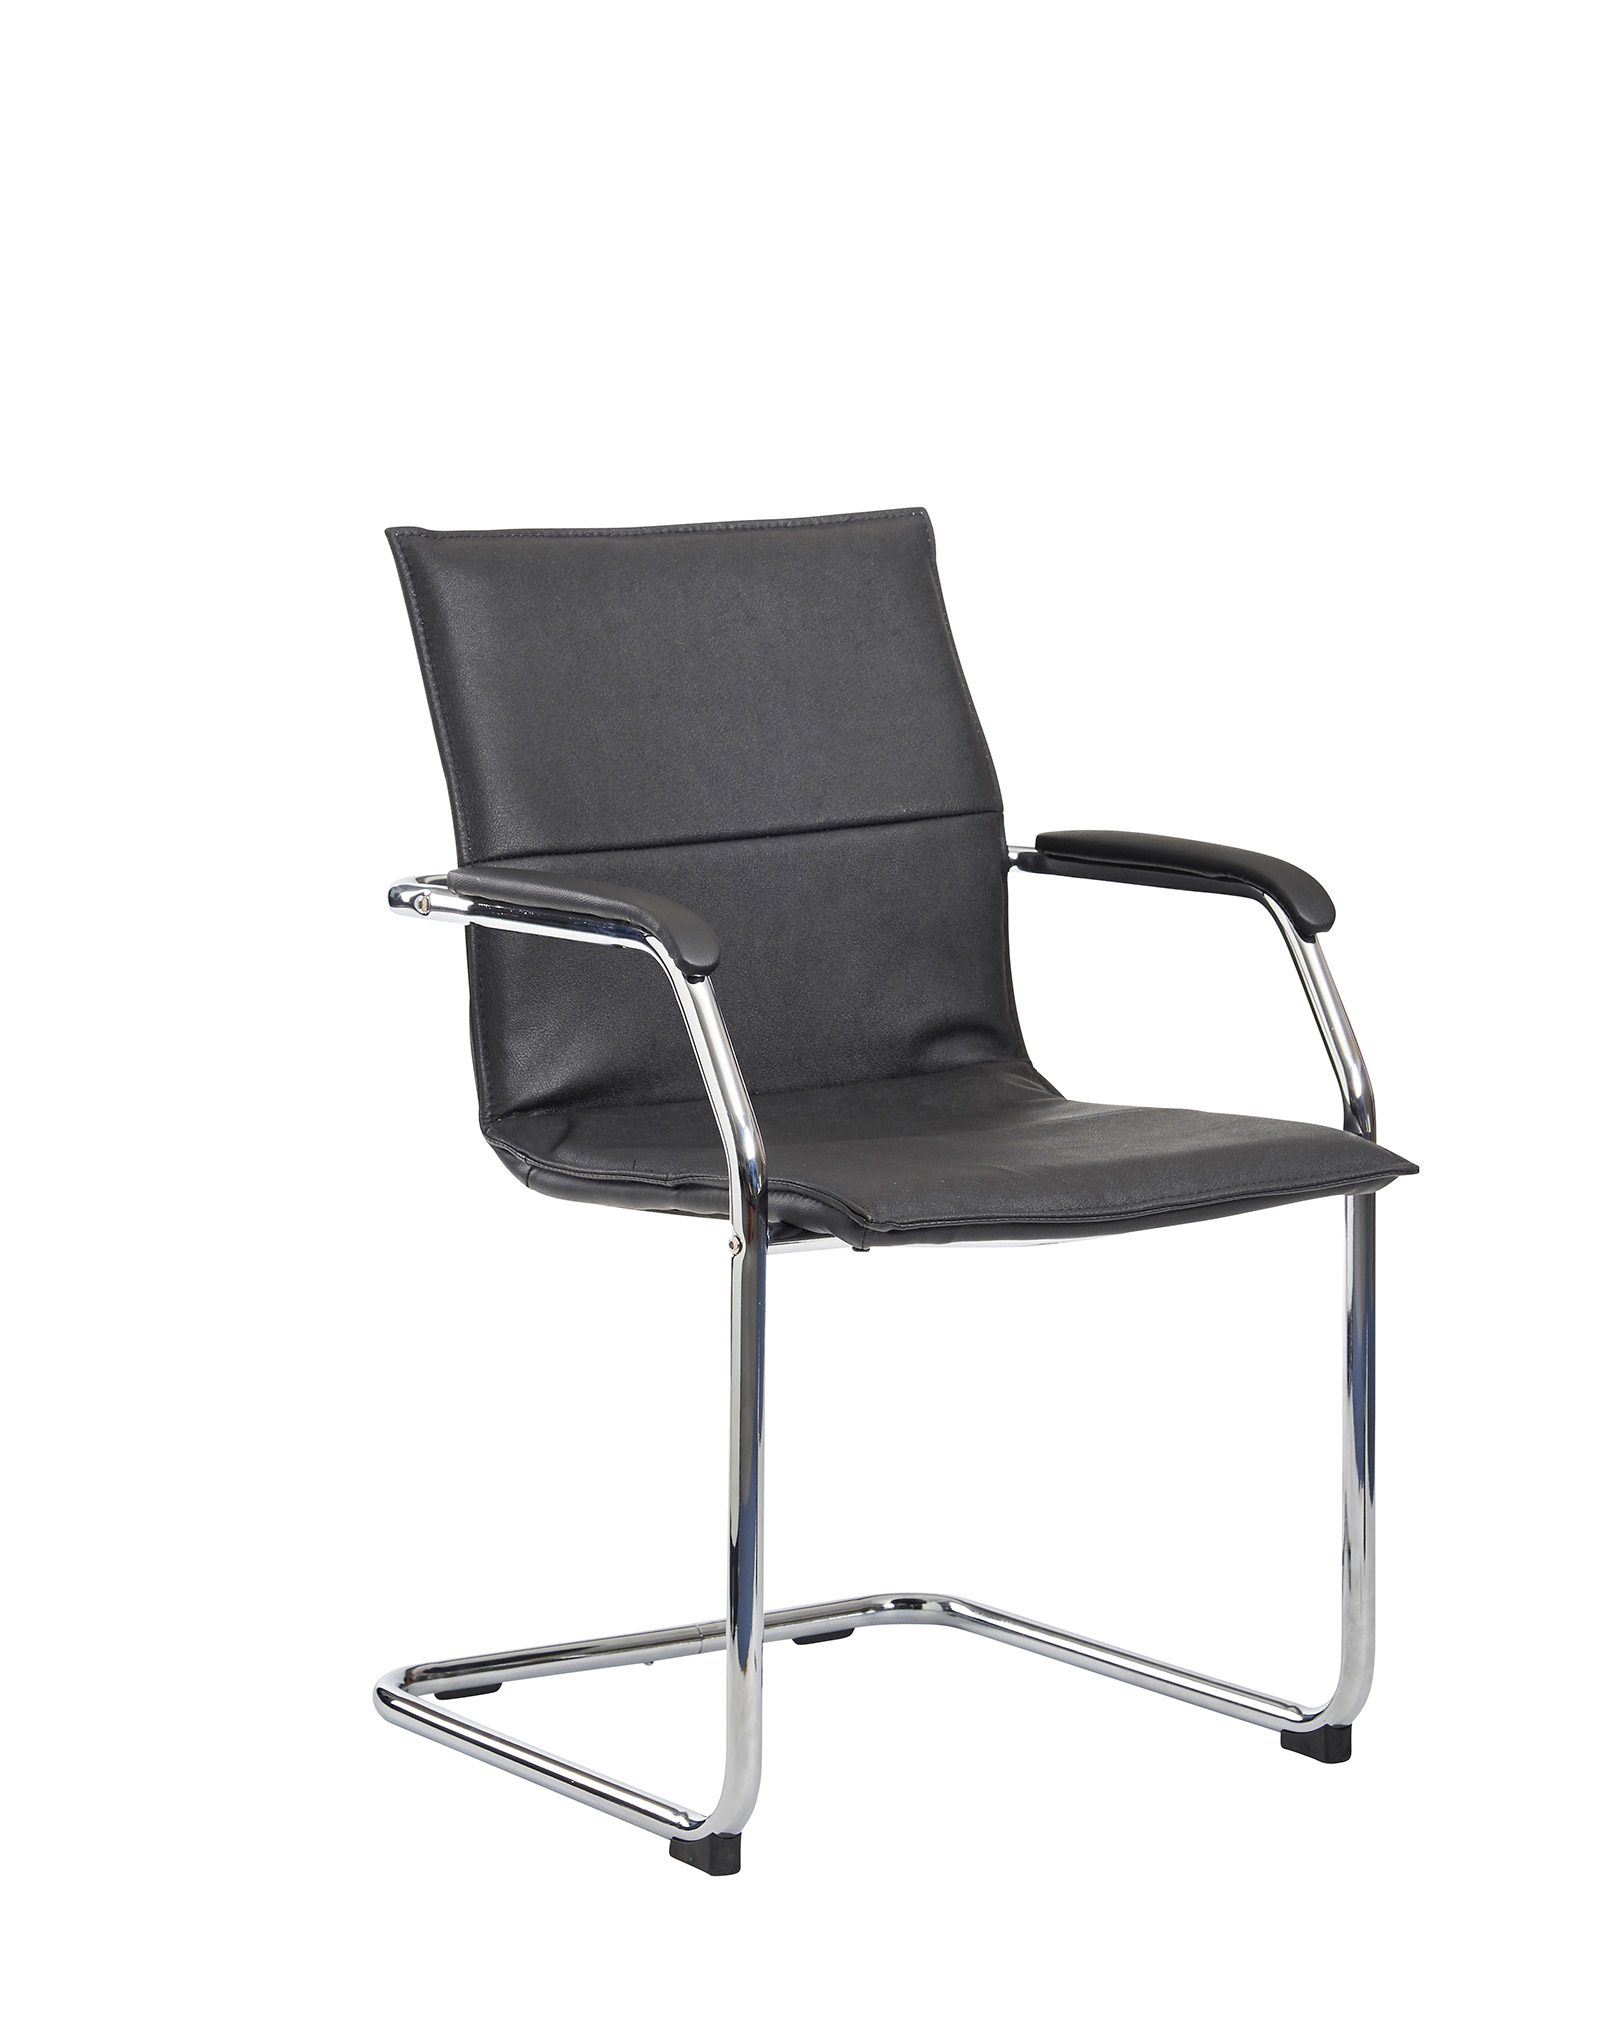 Essen Leather Faced Cantilever Chair - Black